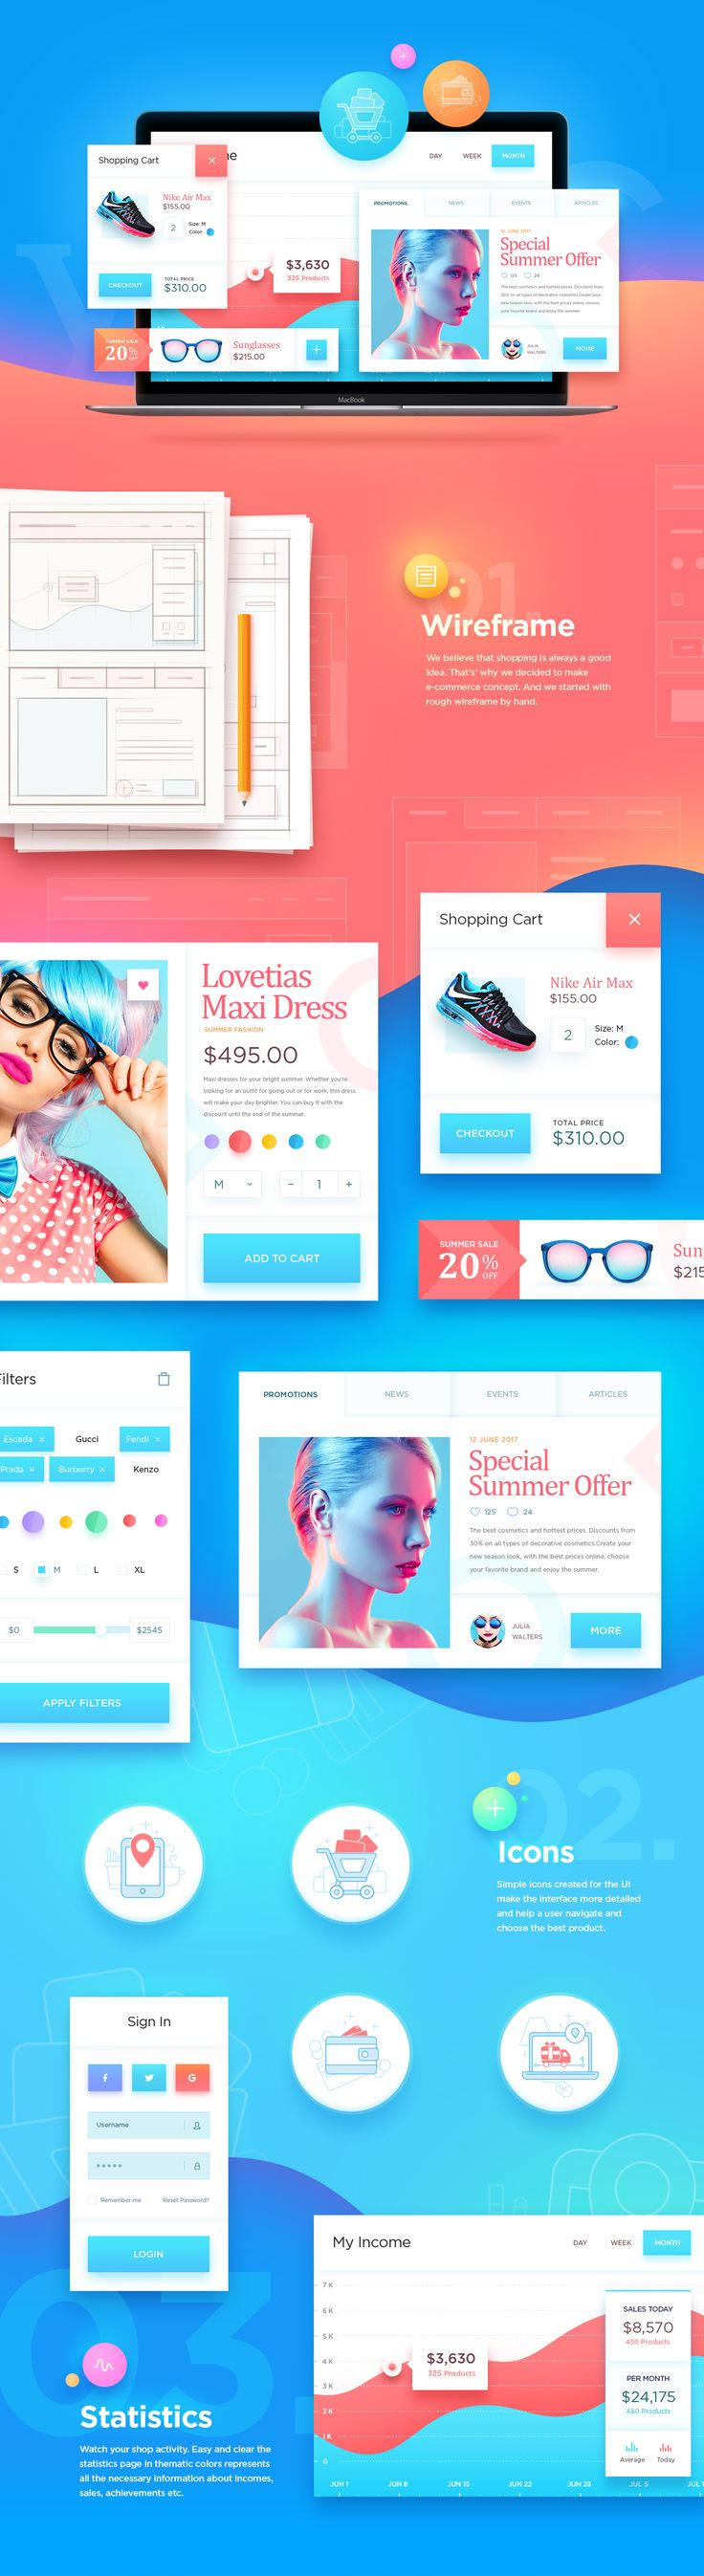 NestStrix studio glad to share with you the new project. Three freebie UI kits created by our designers represented here. You can try it yourself. All you need to do is download our free UI Pack. We also will be very happy to design a website or applicati…